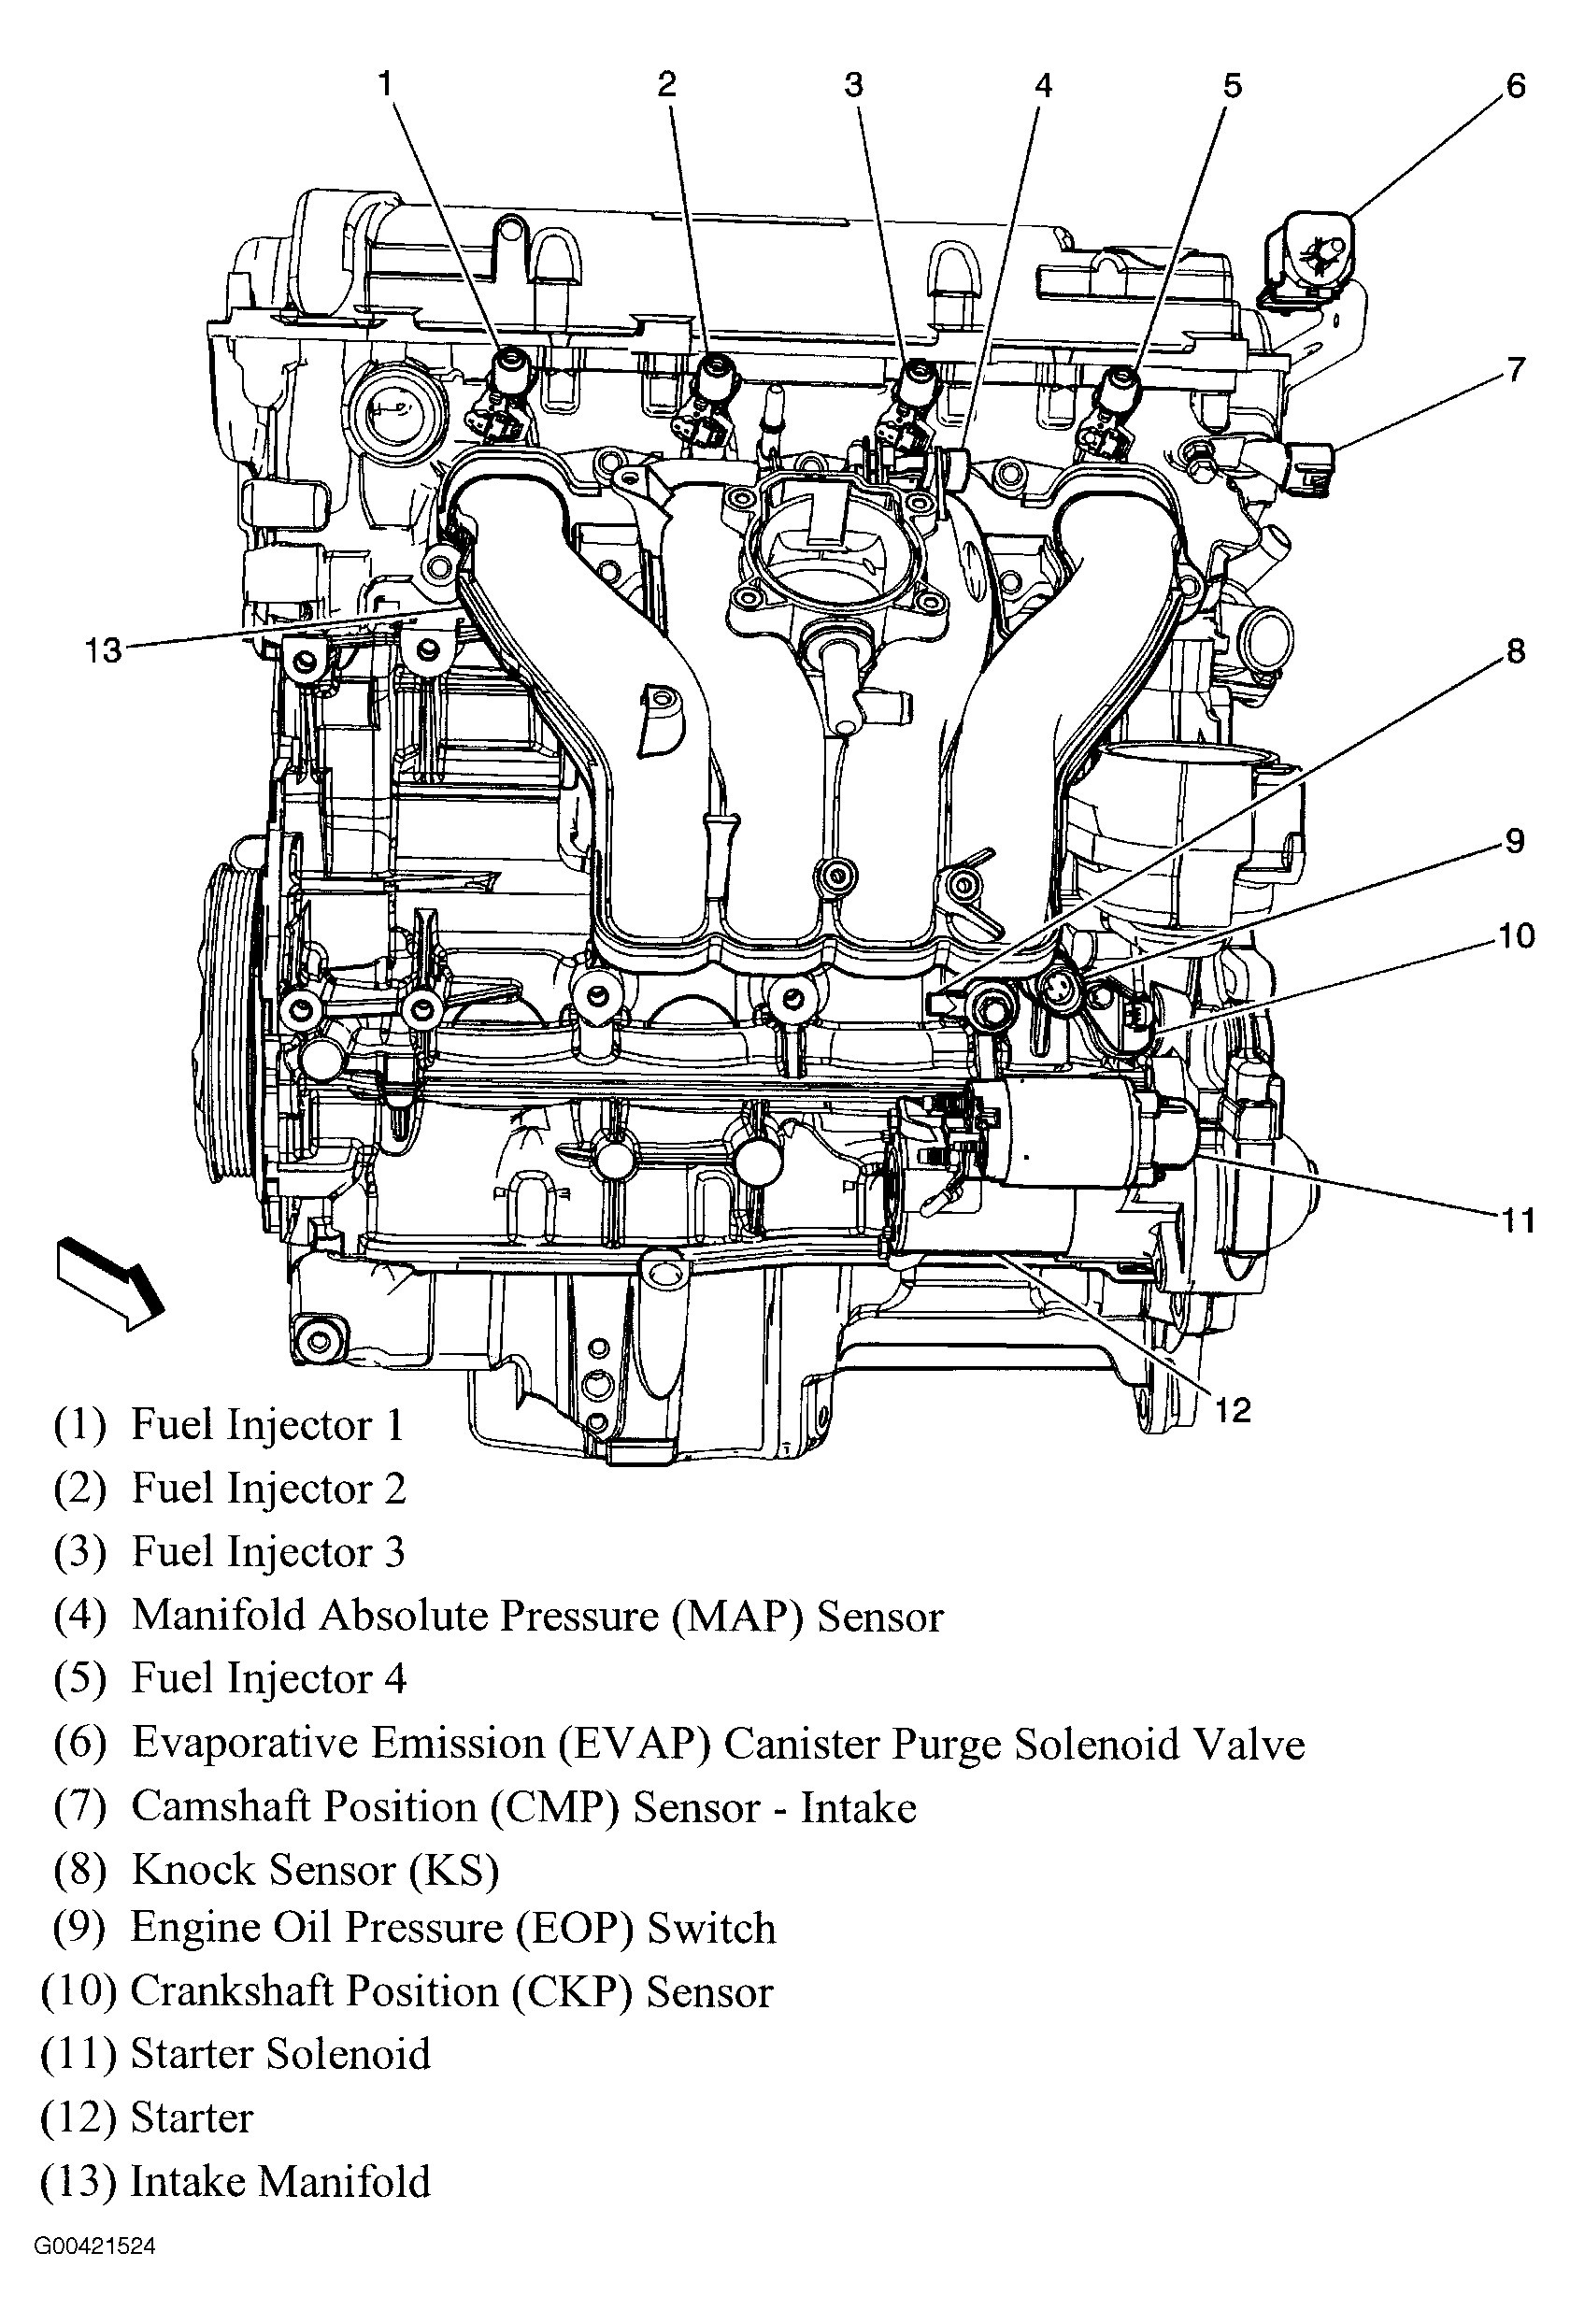 2011 chevy impala engine diagram